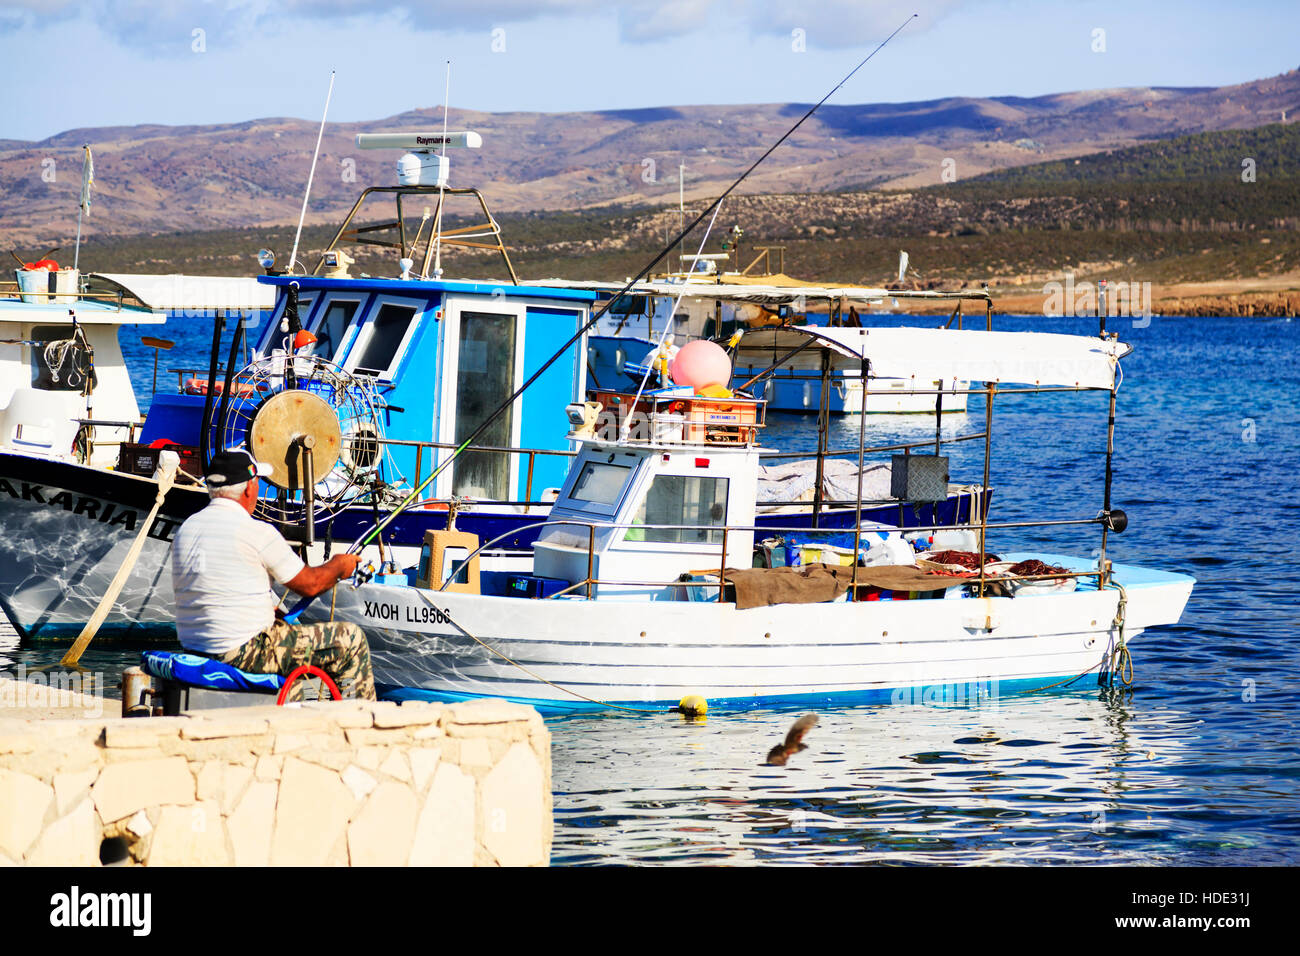 Fishing on the quayside of Agios Georgios harbour, Paphos, Cyprus. - Stock Image